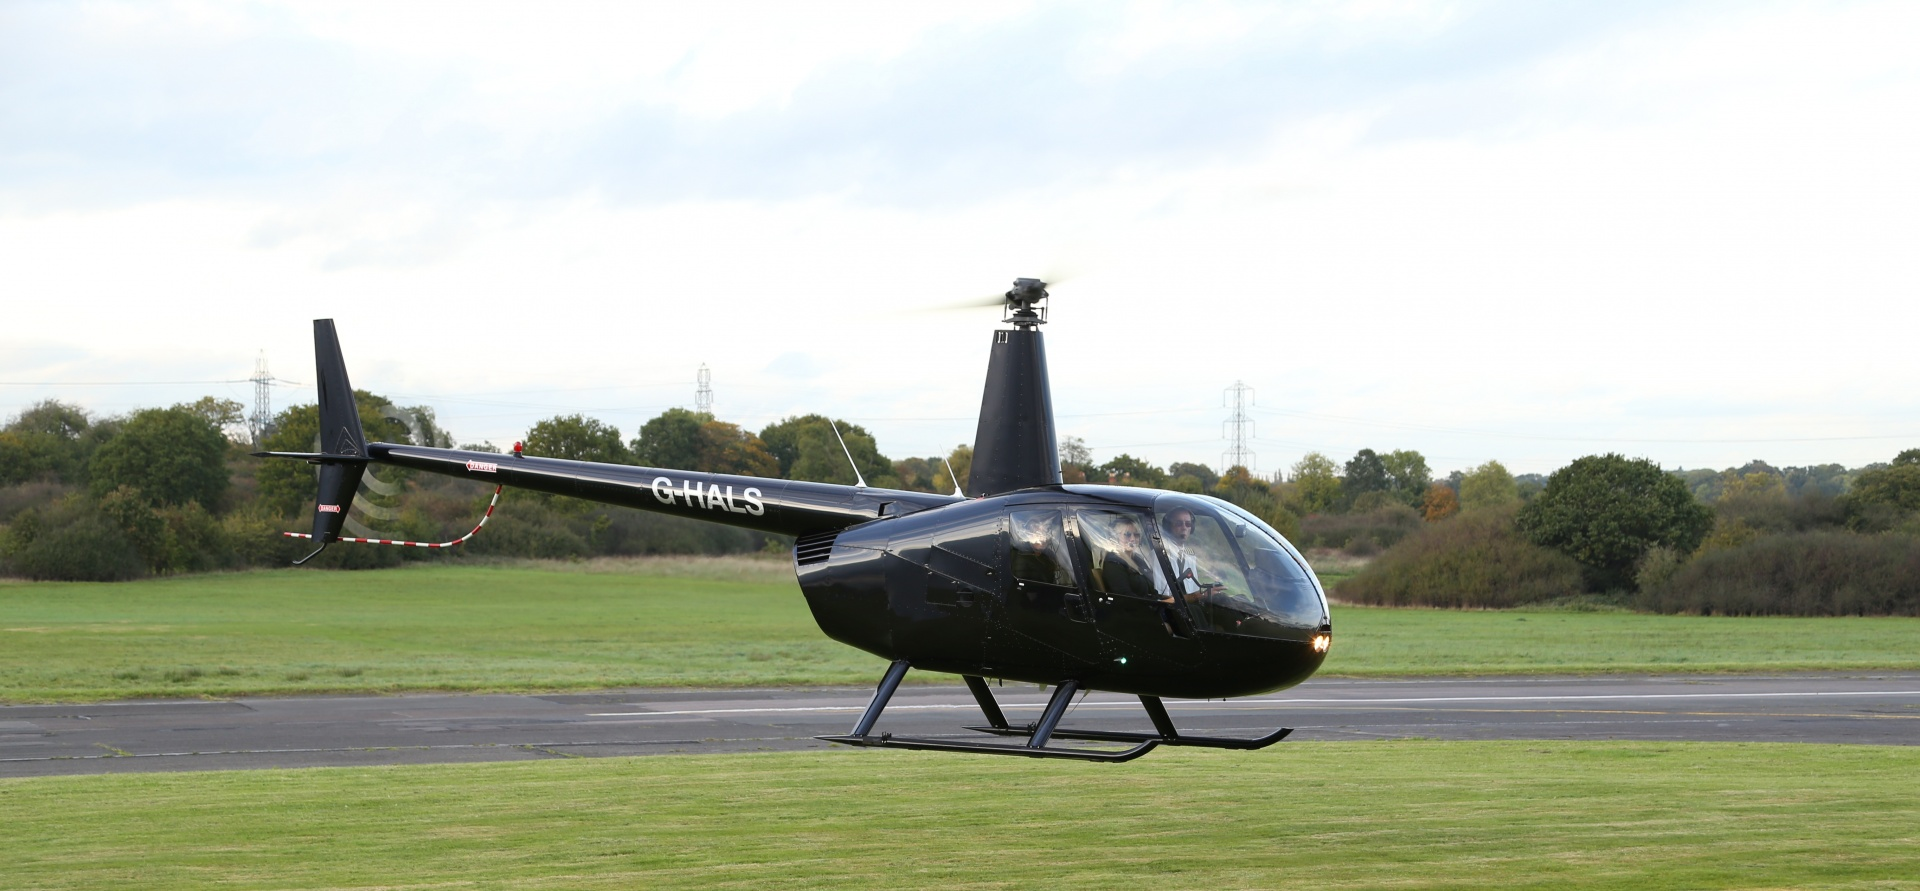 R44 Shared Helicopter Introductory Flight In Hertfordshire